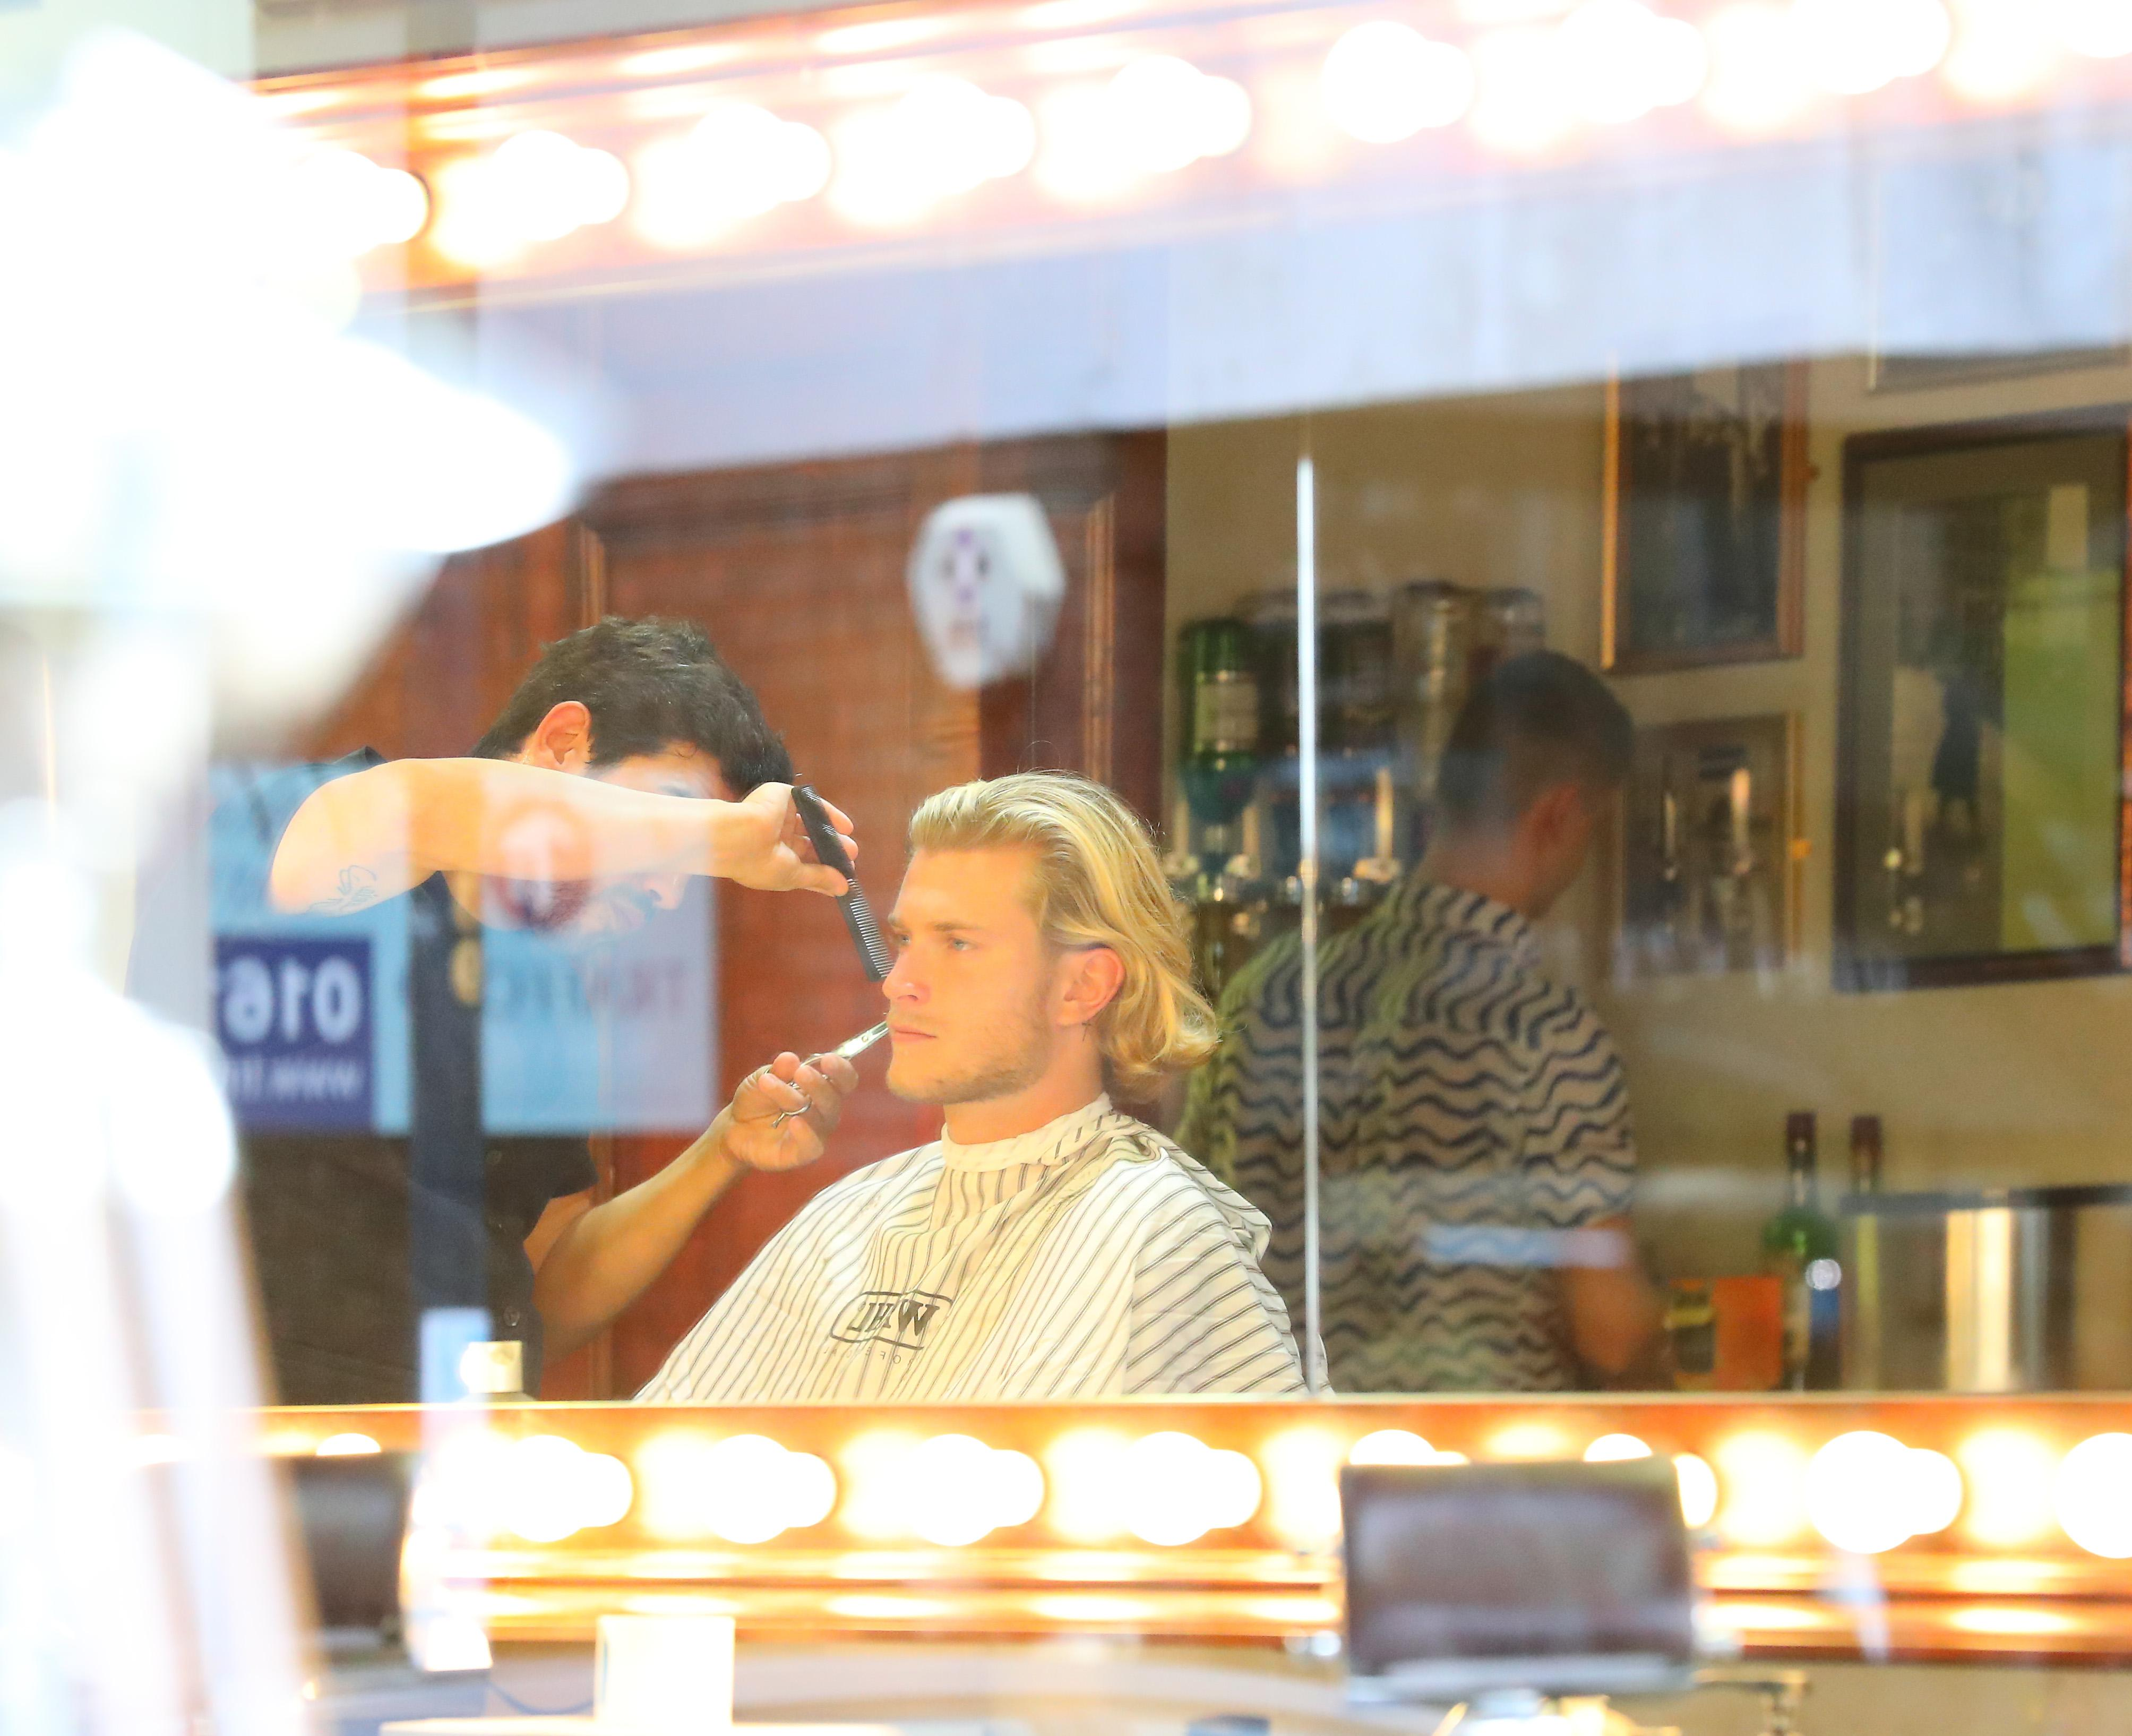 Loris Karius had a quick haircut in Hale Village amidst transfer speculation